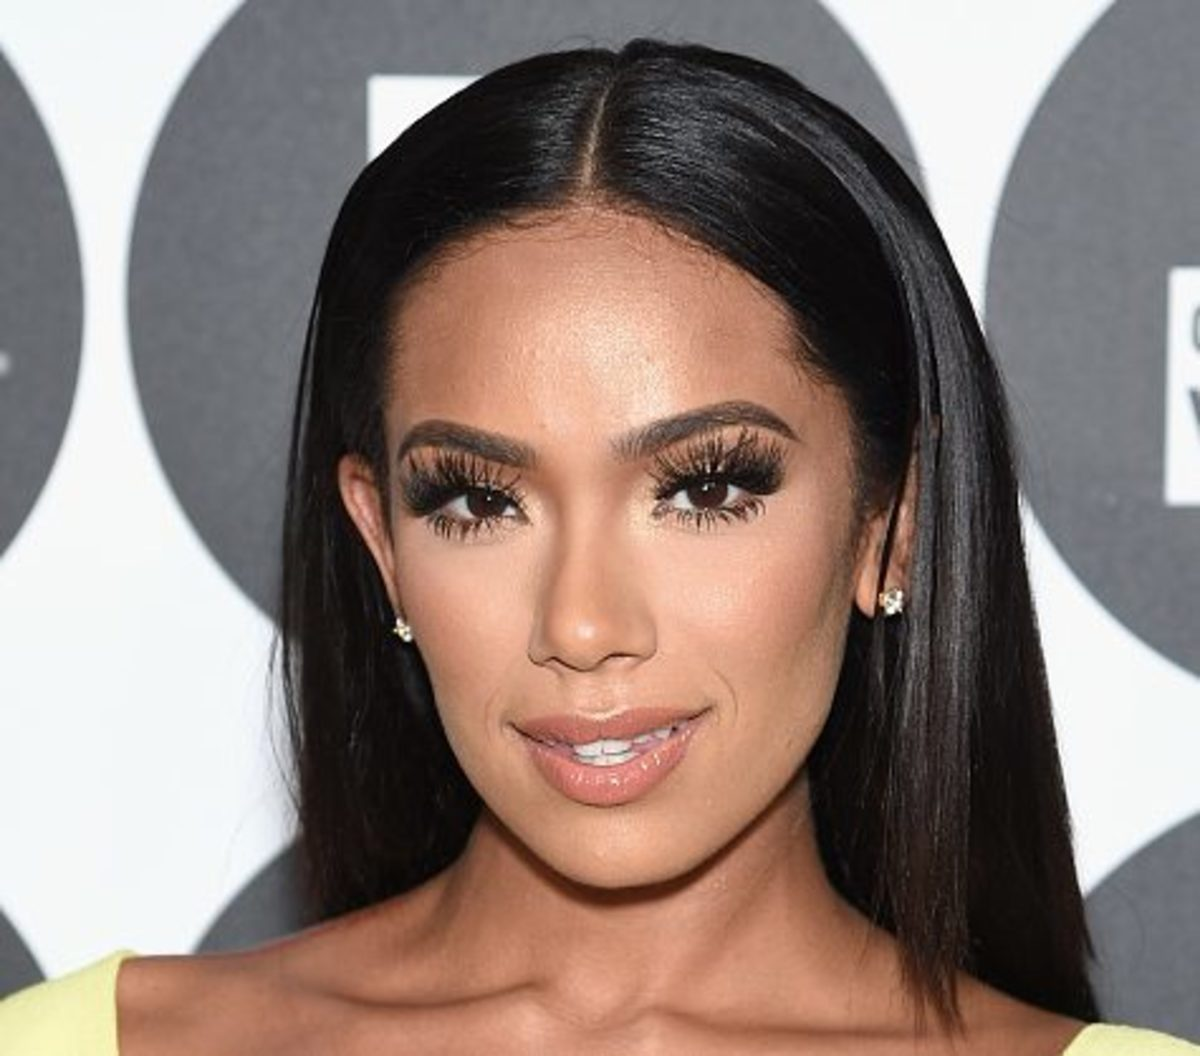 Erica Mena Shows One Of Her Secrets For A Flawless Skin